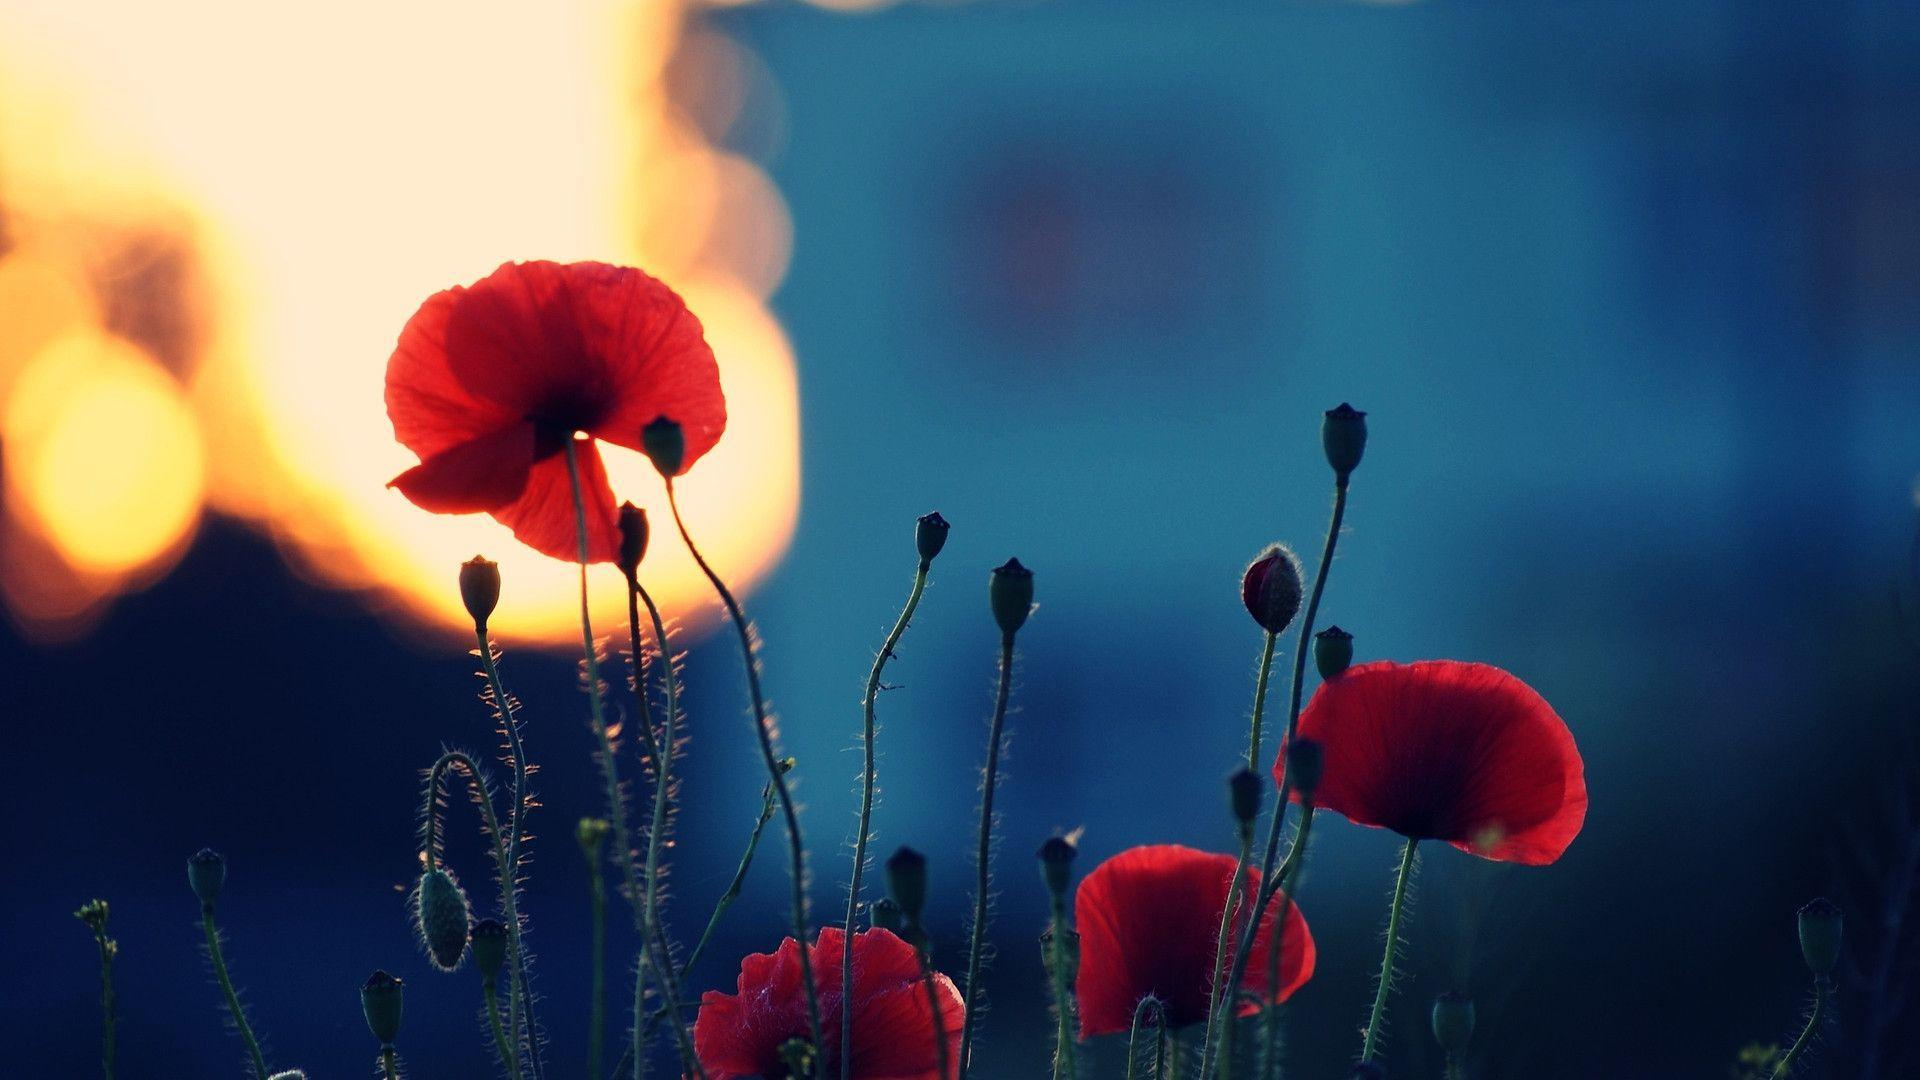 poppies wallpapers 22 hd - photo #24